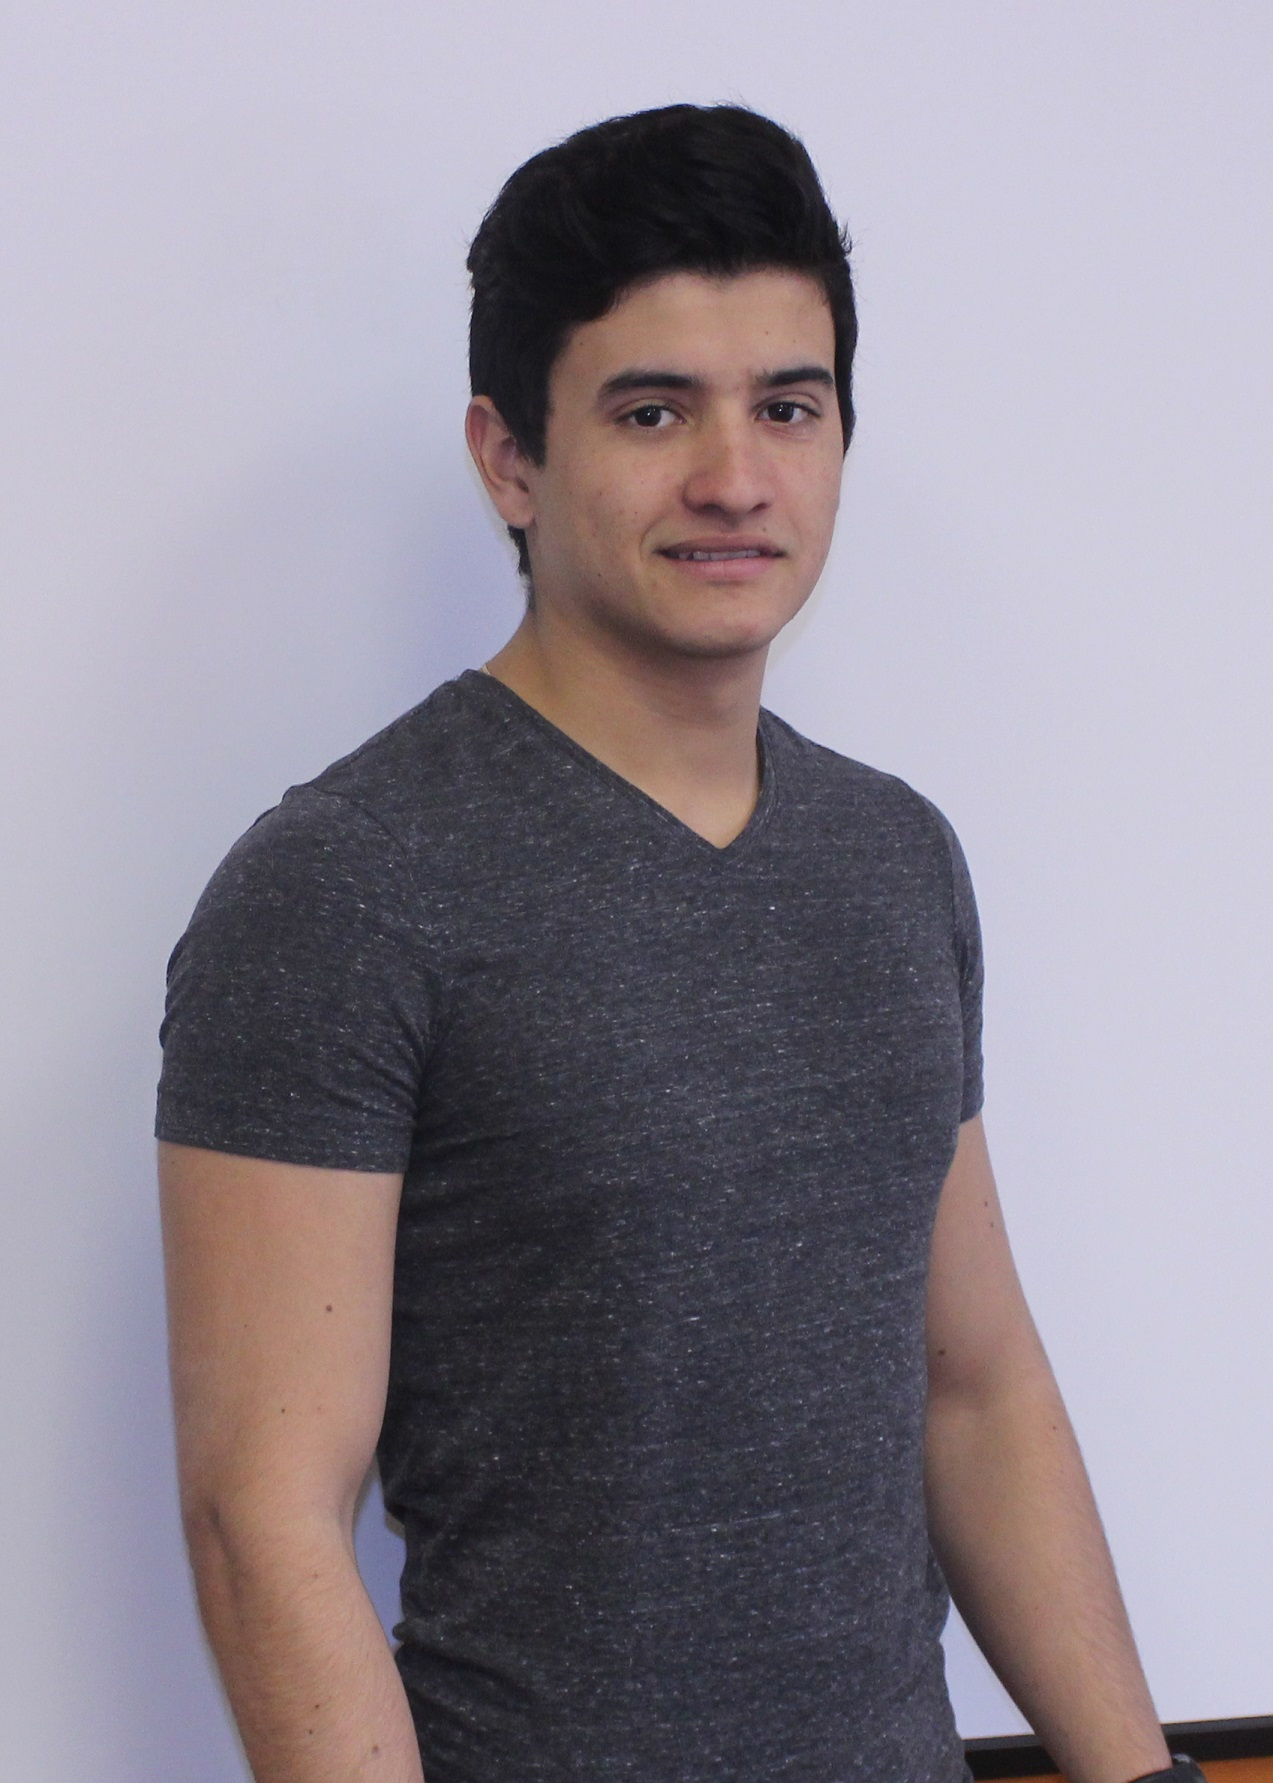 Nicolas Ramirez from Colombia is taking a French Language Course at EC Montreal, Canada